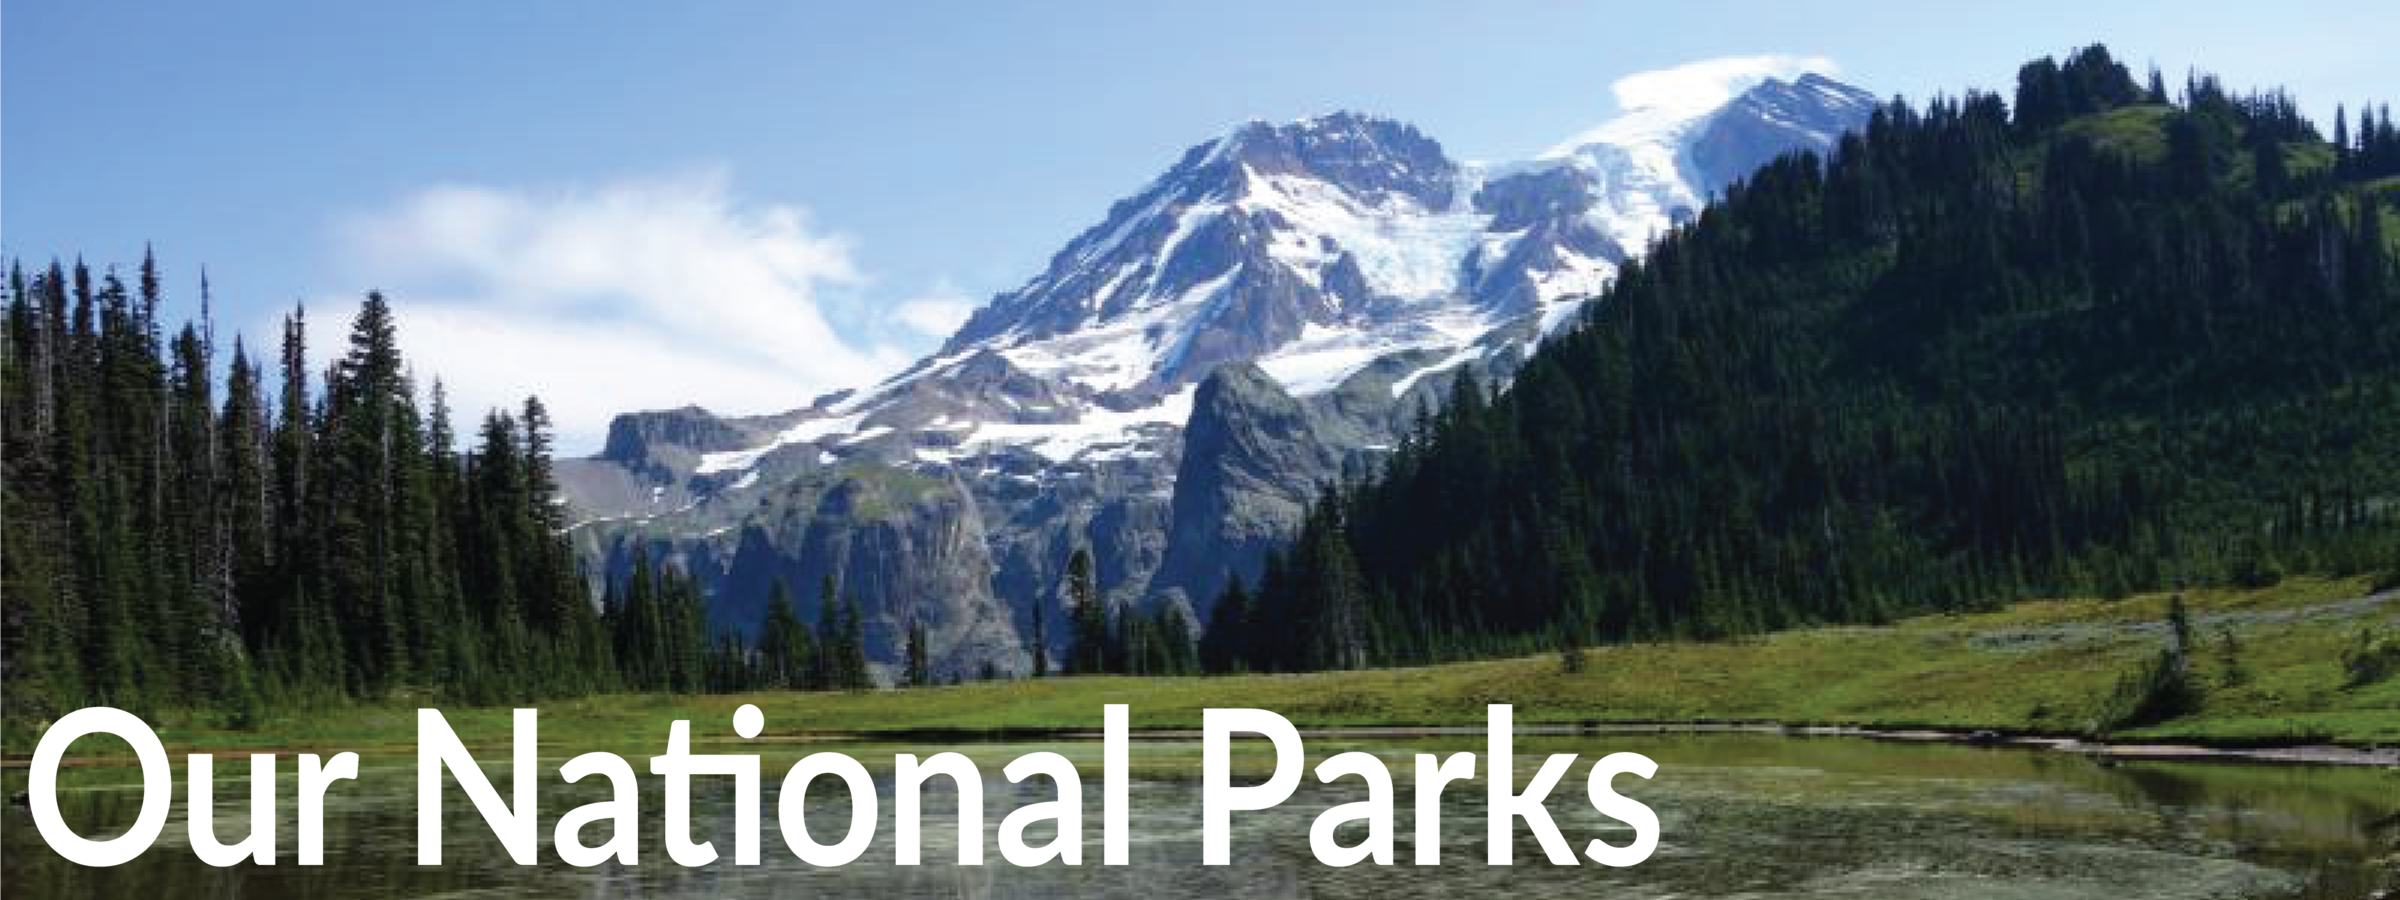 national parks essays From catus to glacier, bear to lynx, hiking trails and massaging hot springs kootenay national park, established in 1920, is one of canada's thirty-nine national parks.